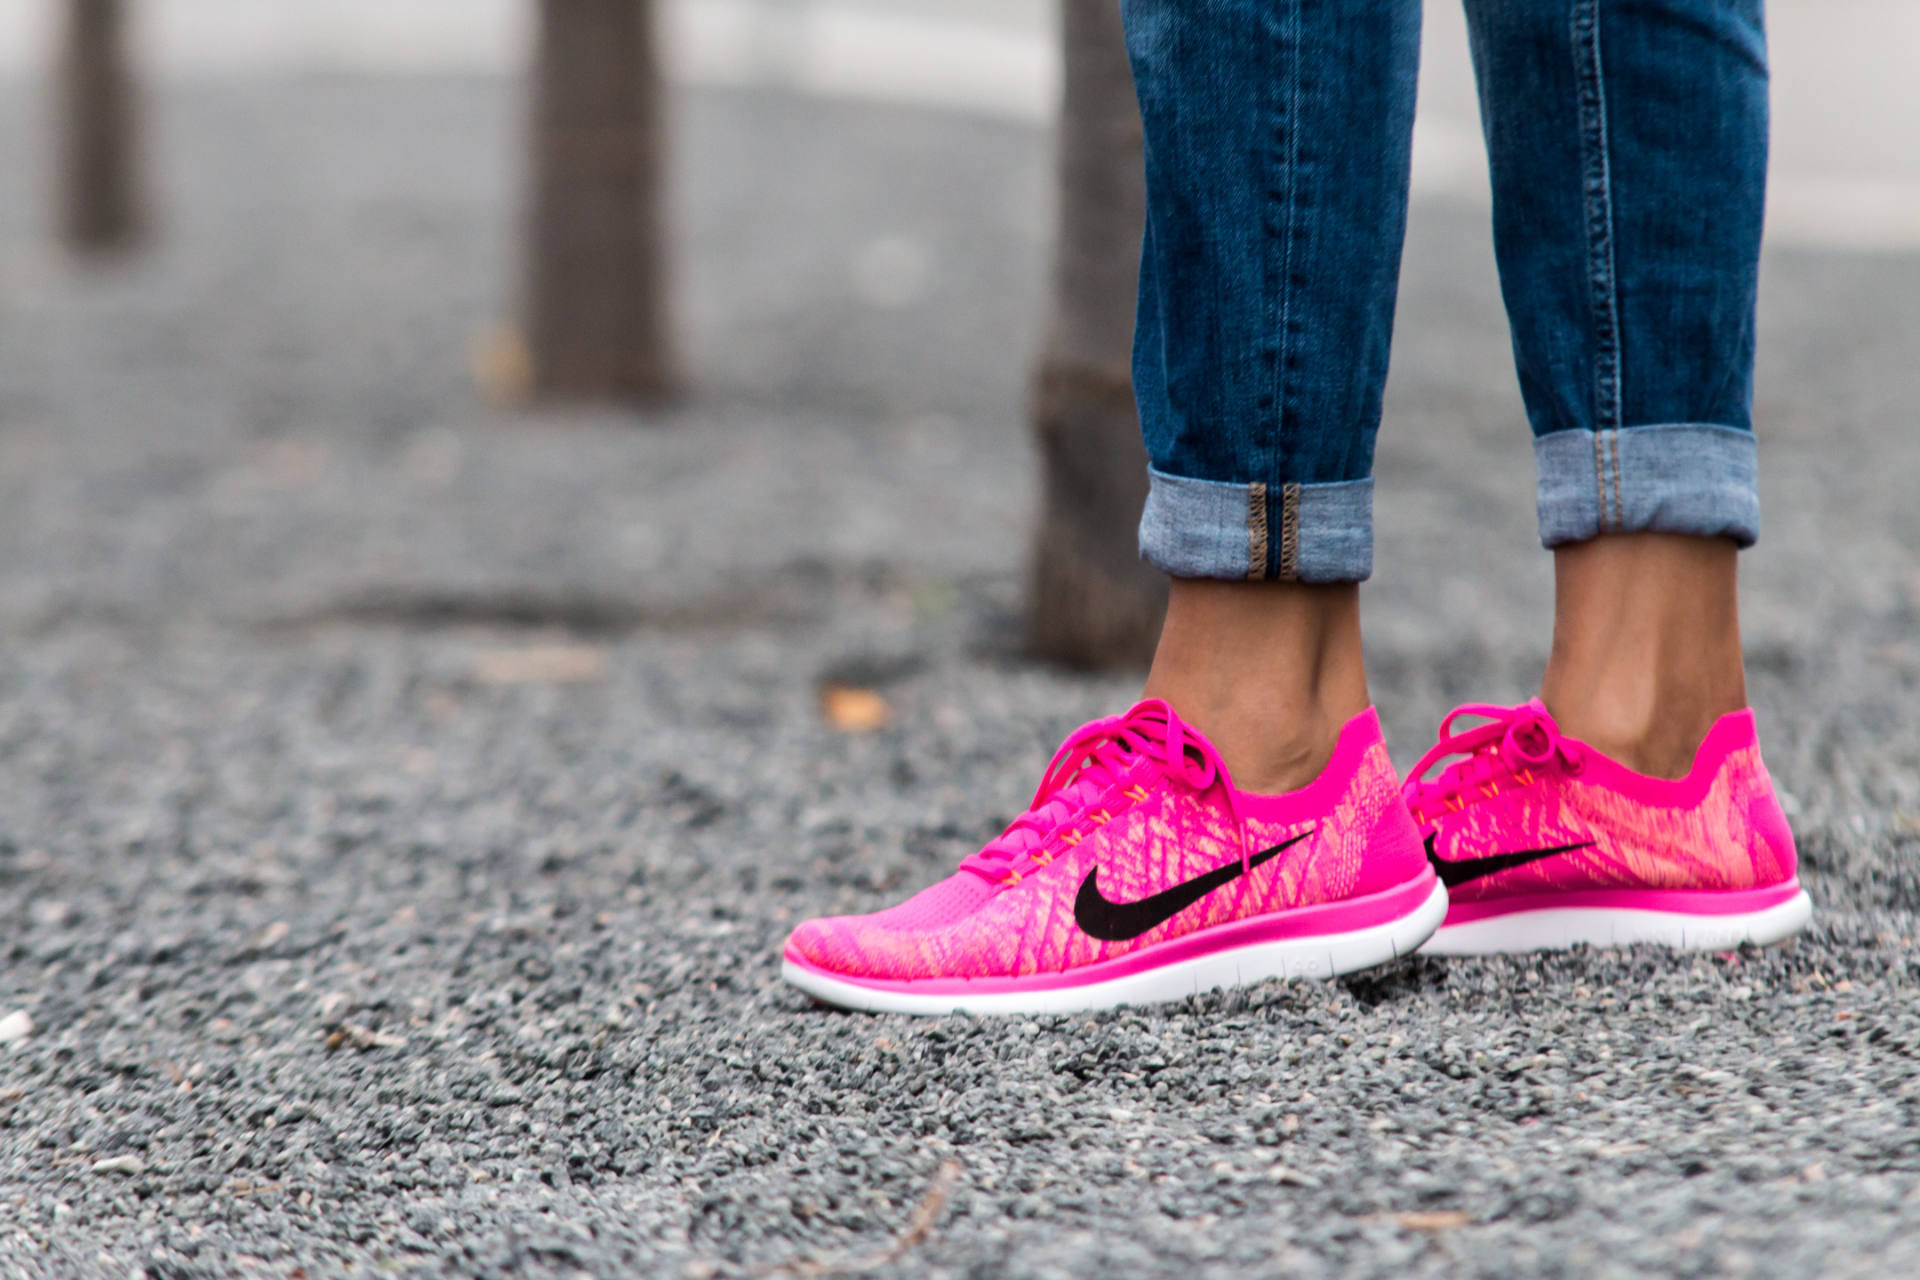 nike fly knits 4.0